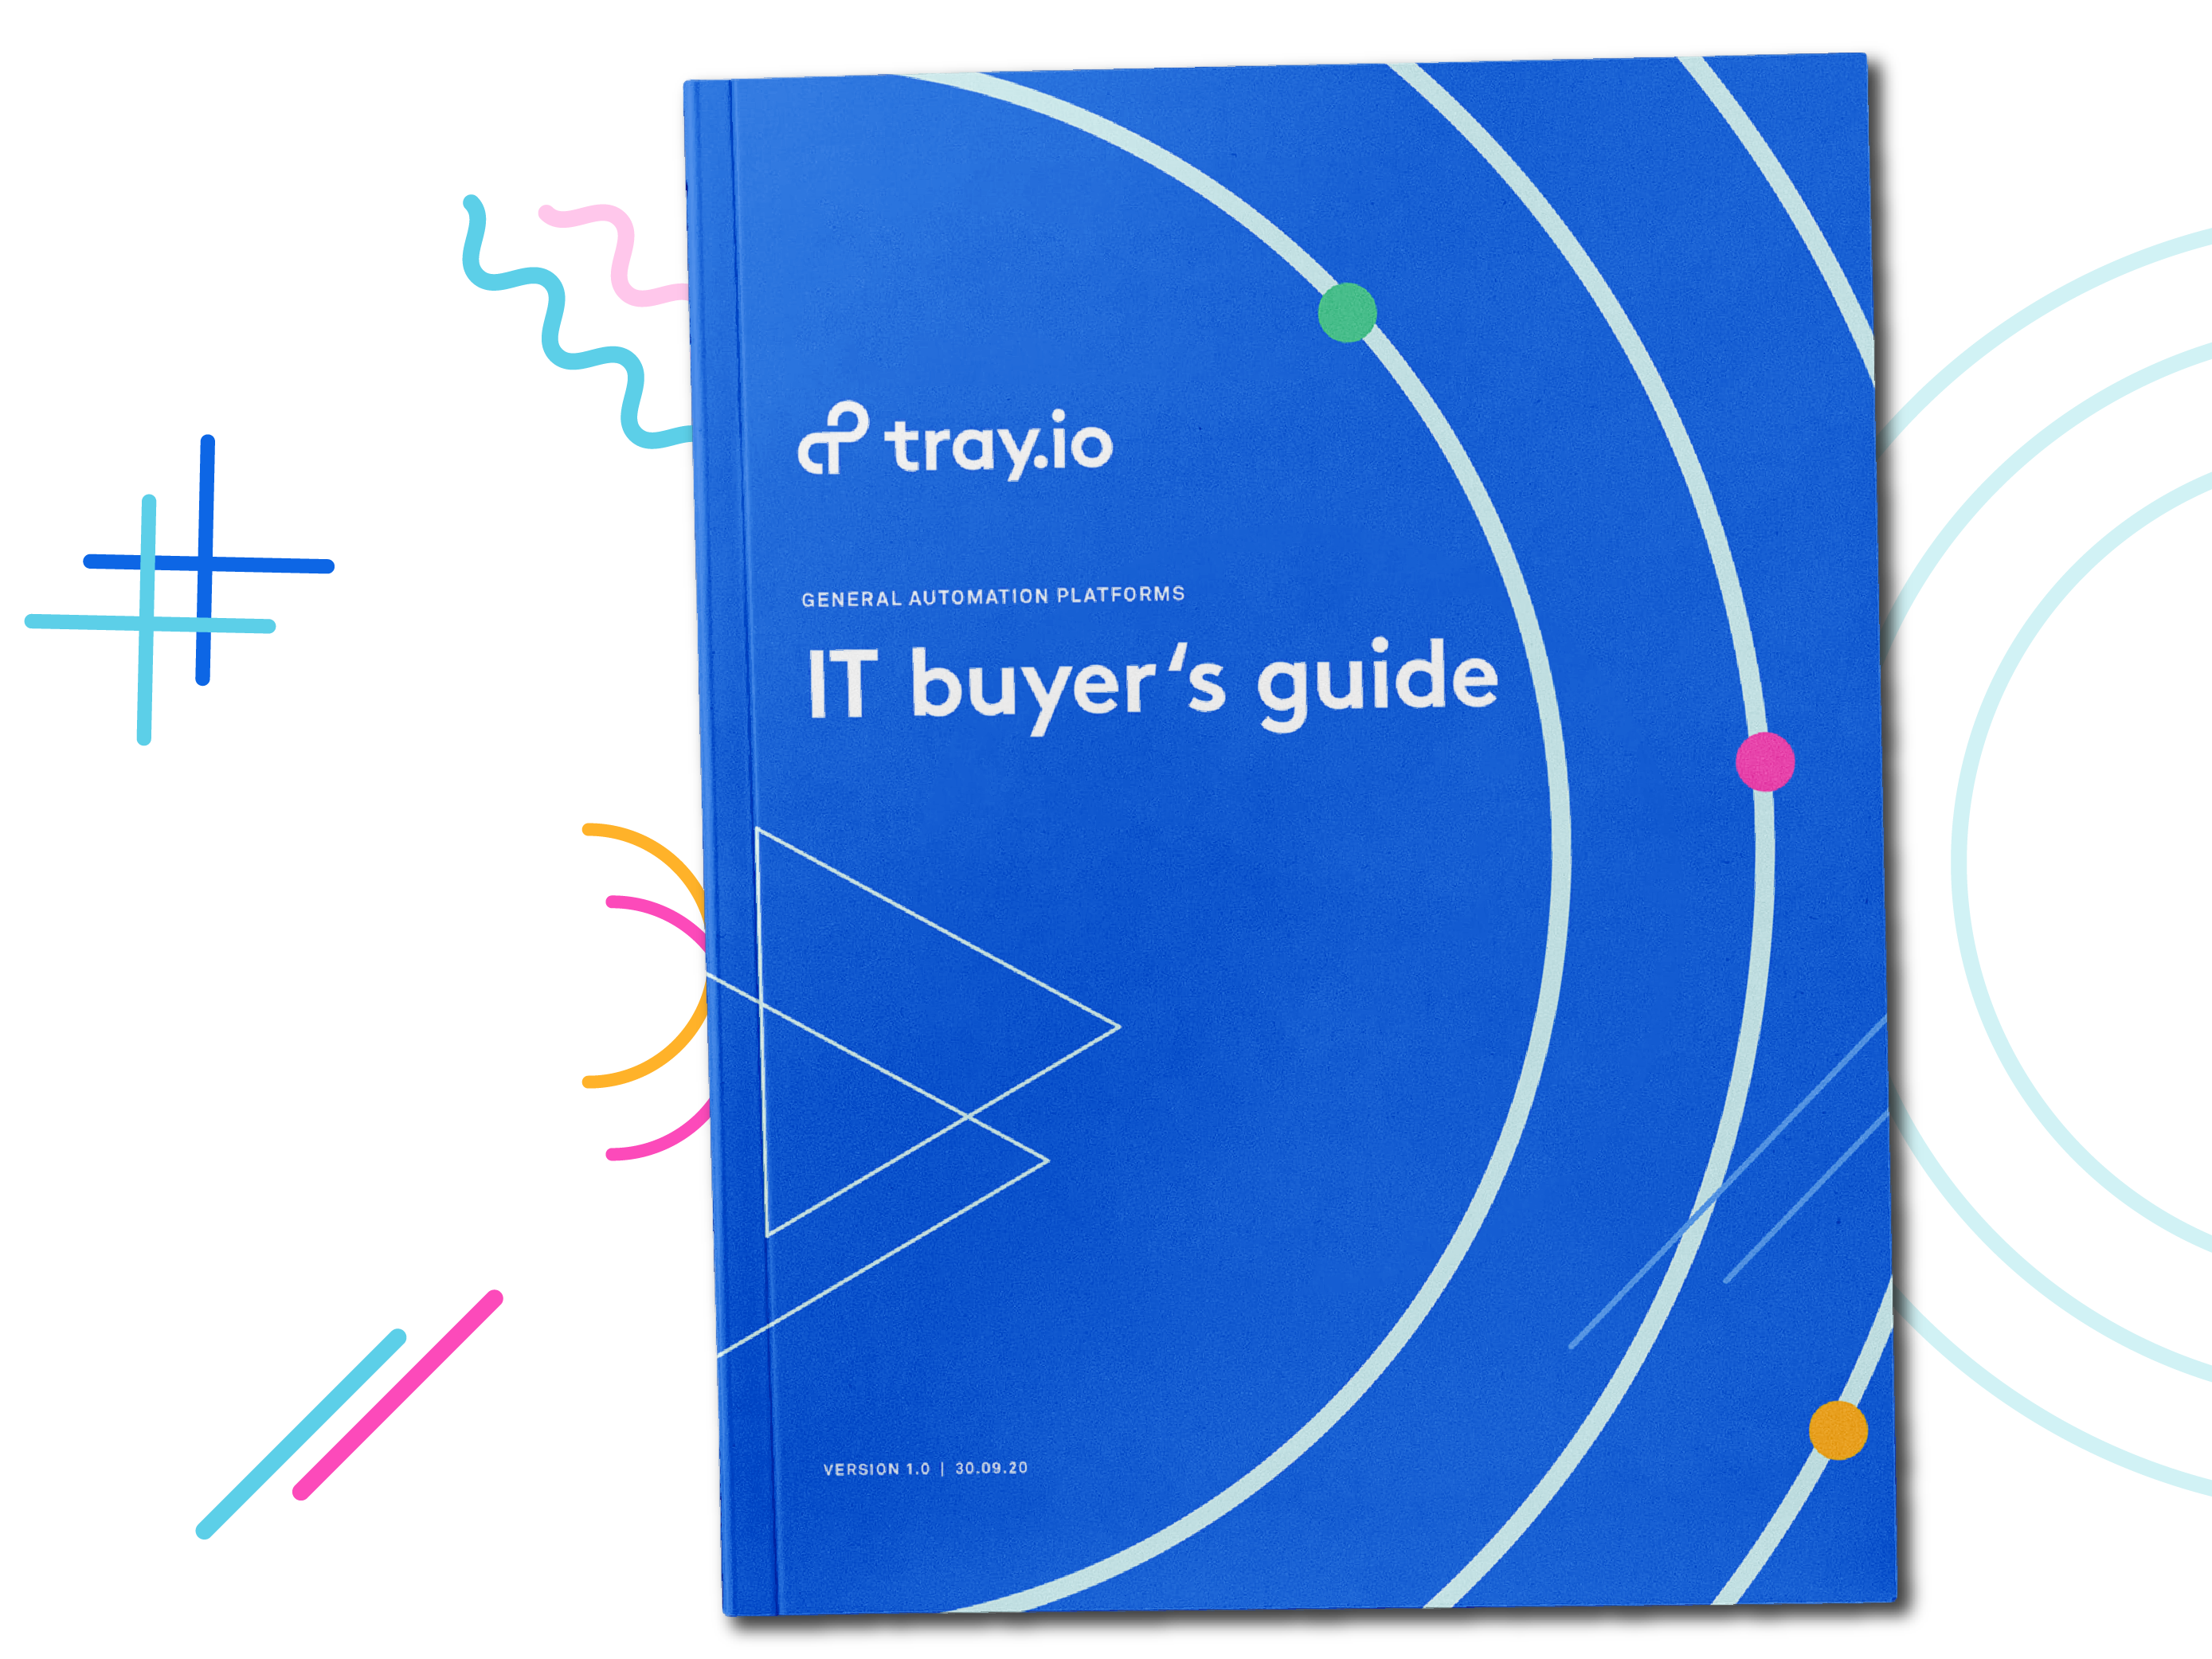 it buyers guide illustration